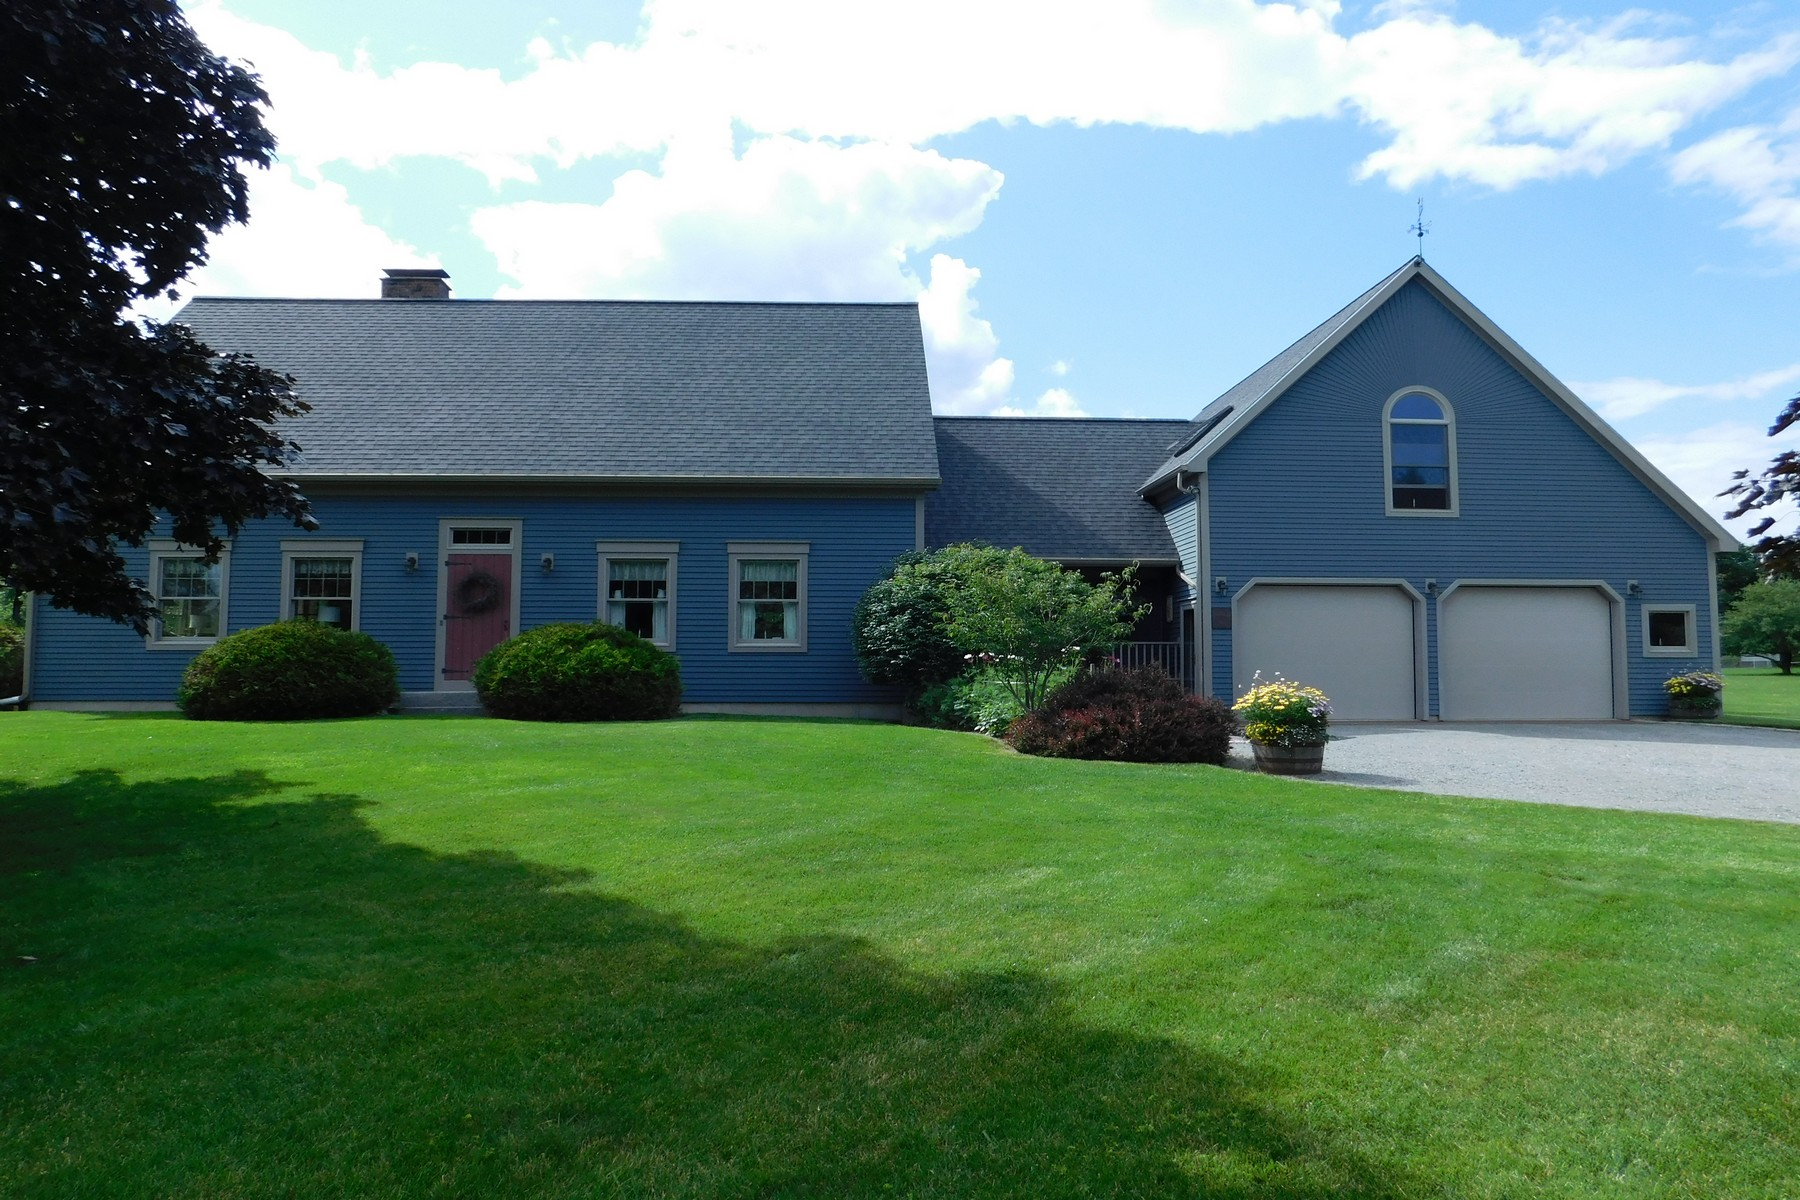 Single Family Homes for Active at 44/58 Crogan Road Hermon, Maine 04401 United States